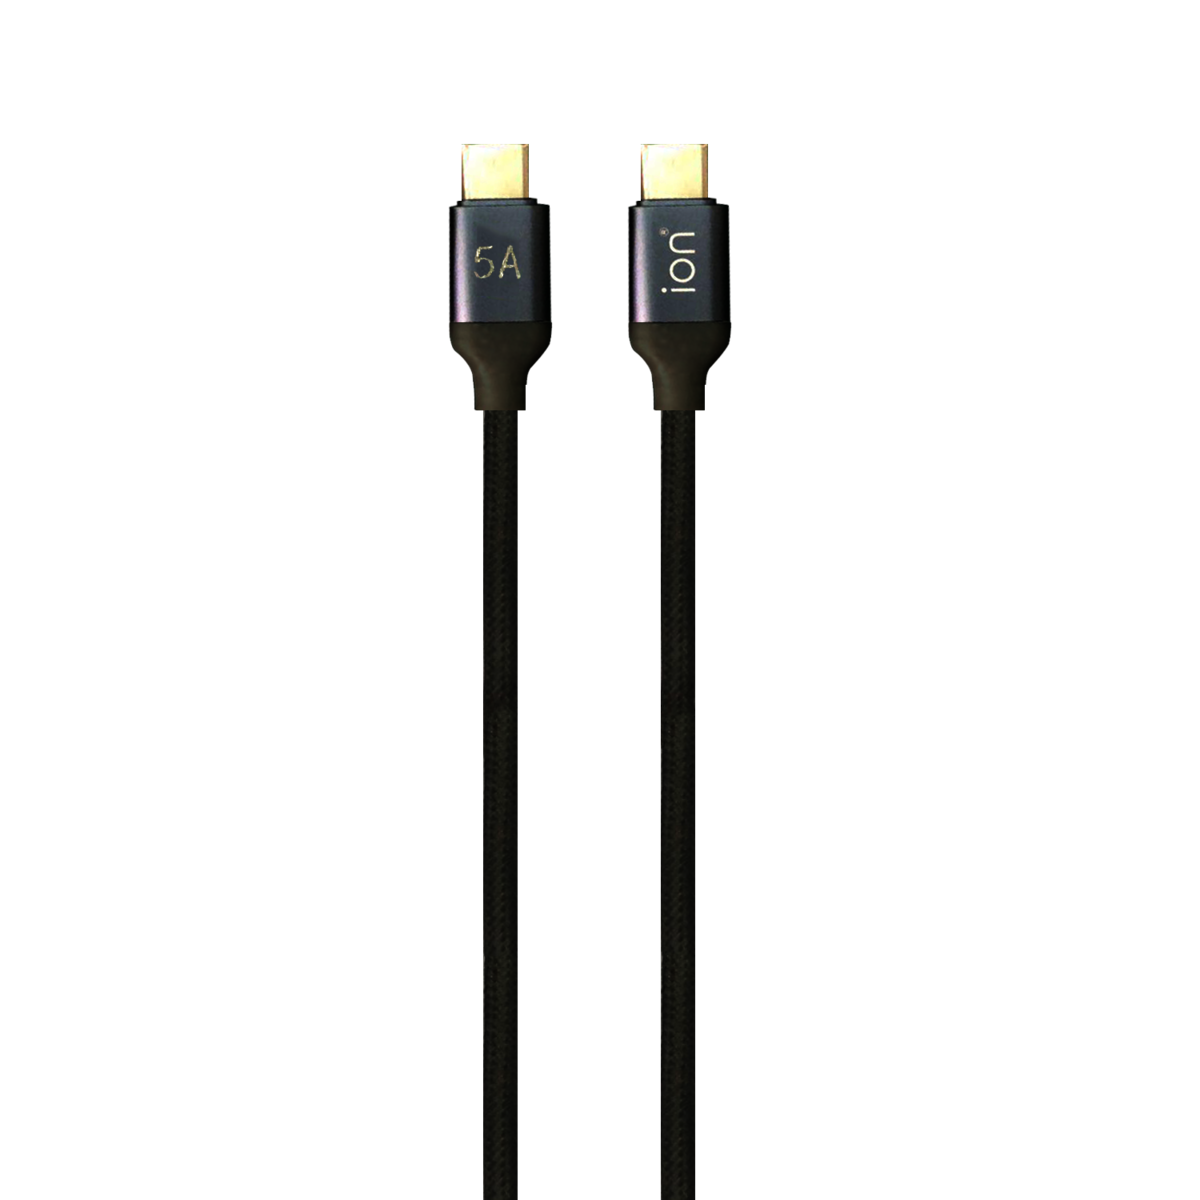 120cm 5A 100W Type C to Type C PD Fast Charging Cable